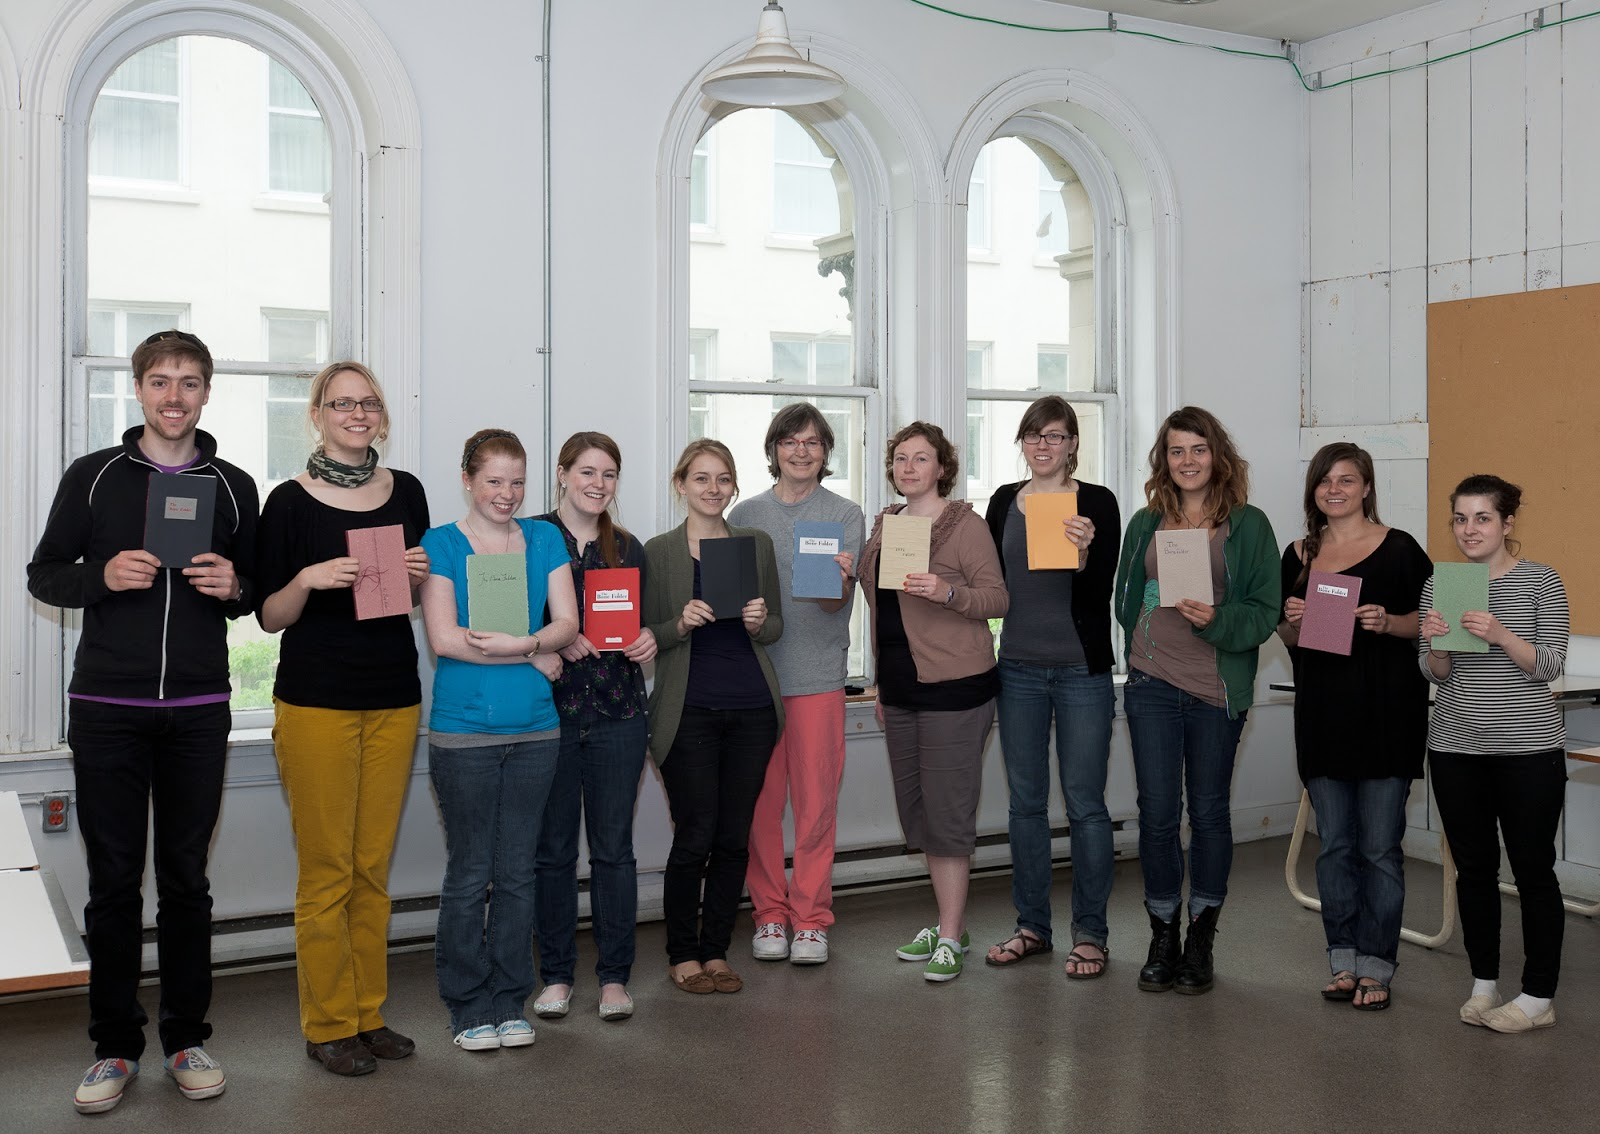 The Pressbengel Project Exploring German Bookbinding Traditions And